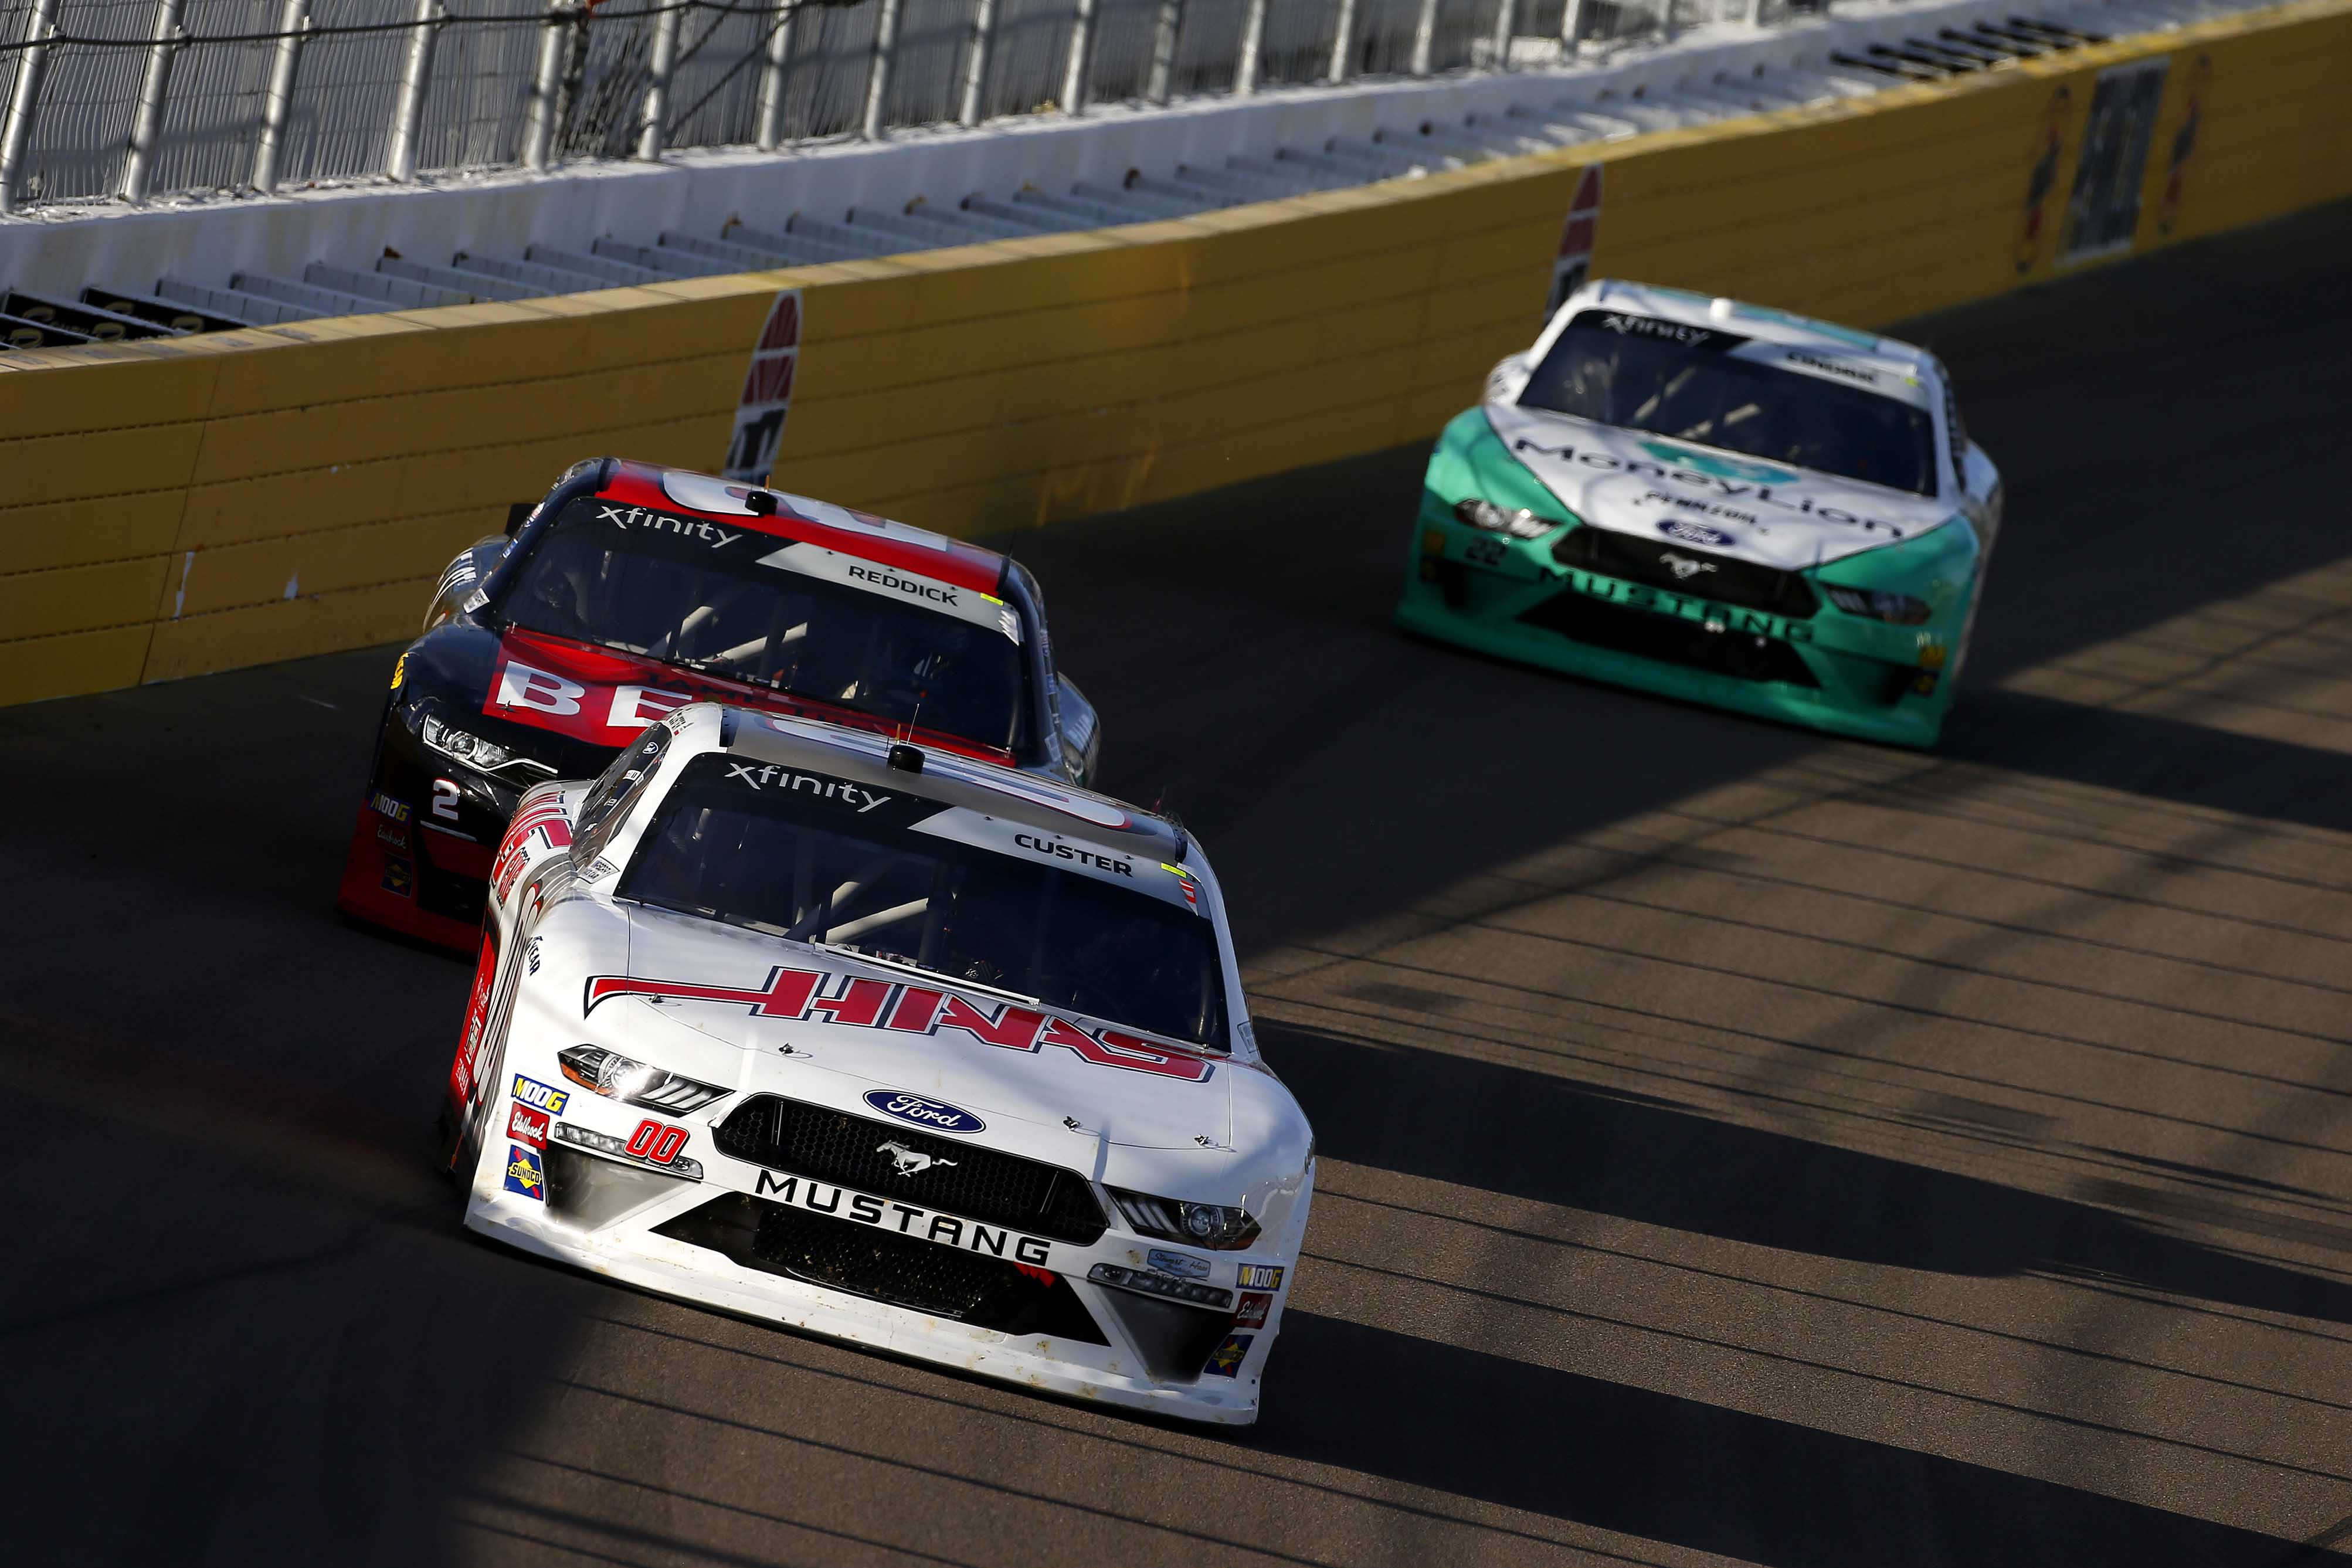 NASCAR reacts to the fight between Cole Custer and Tyler Reddick - Racing News